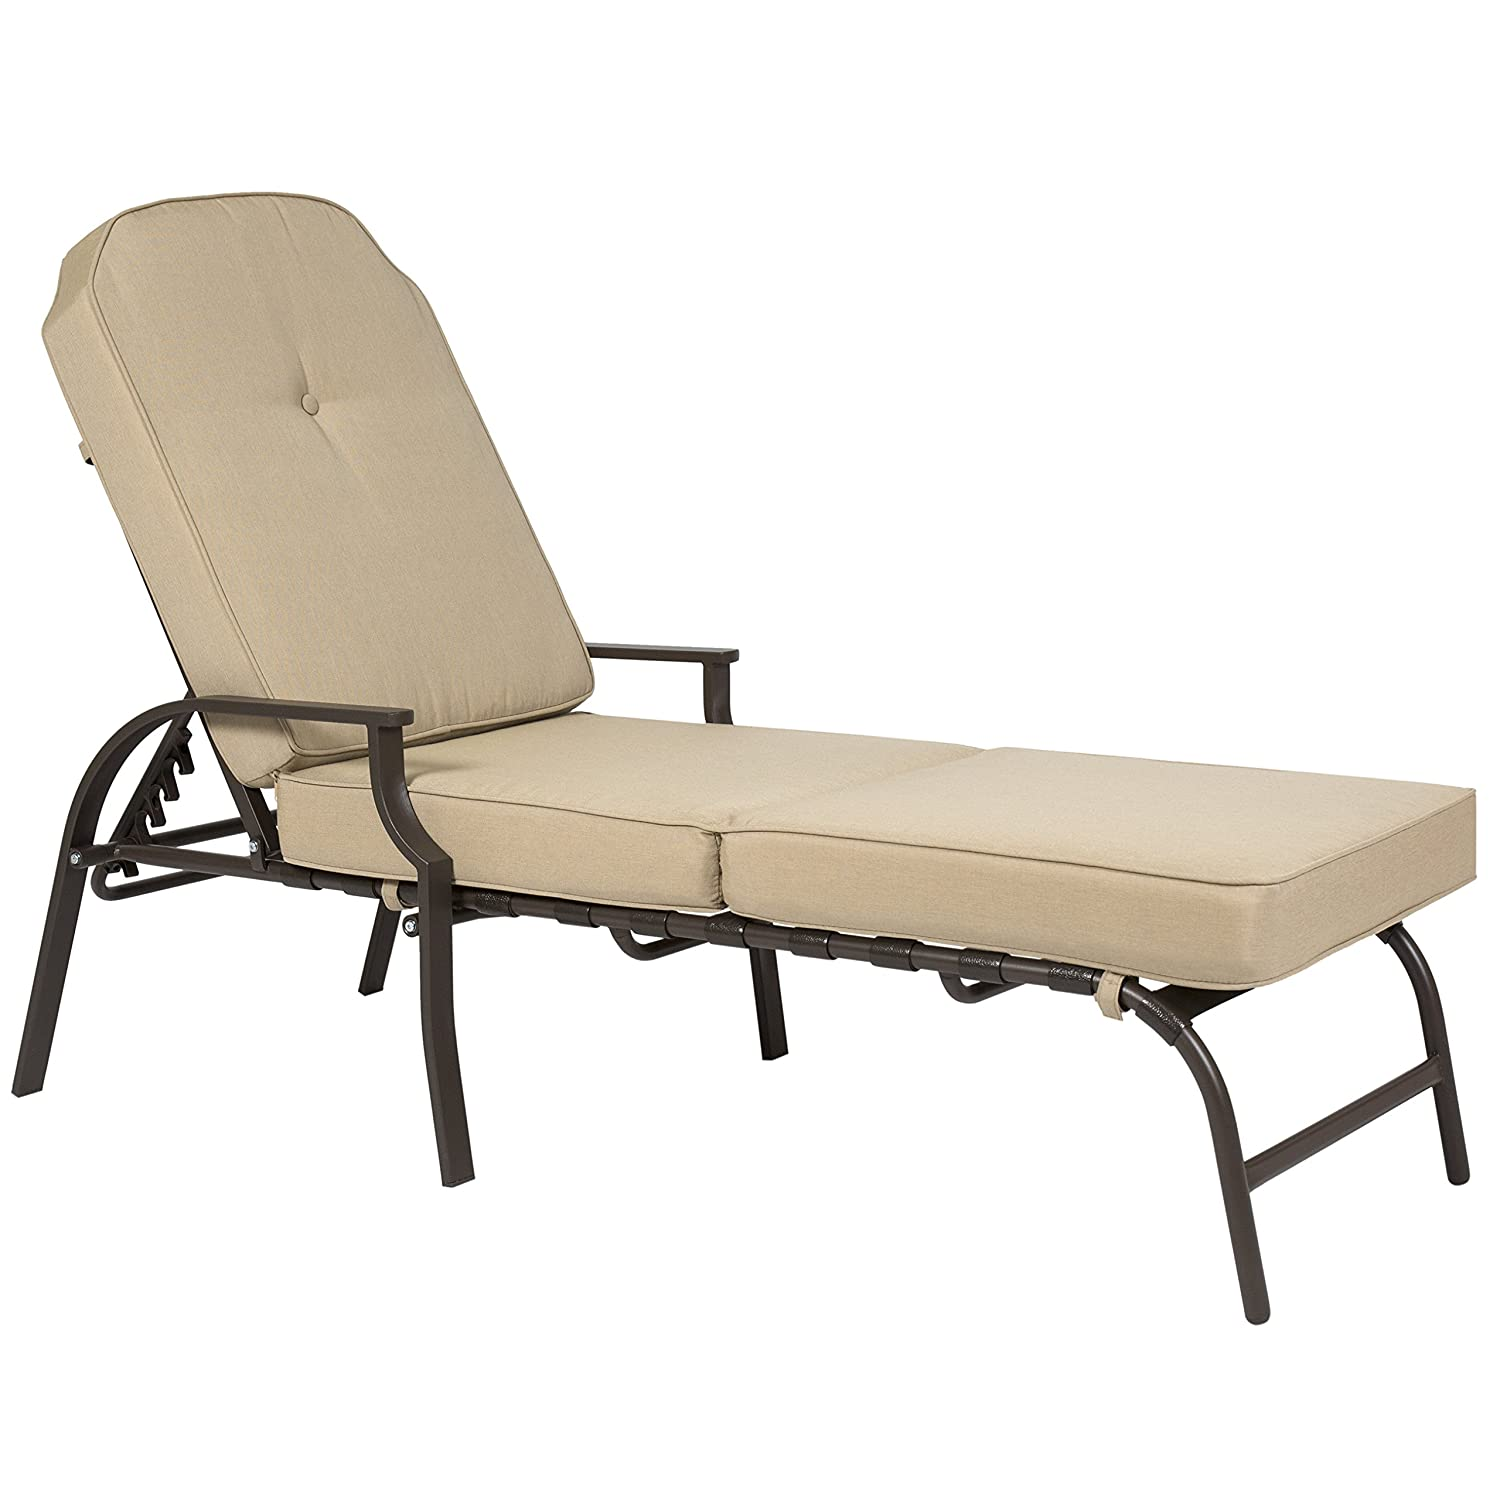 Amazon.com : Best Choice Products Outdoor Chaise Lounge Chair W/ Cushion  Pool Patio Furniture Beige : Patio, Lawn U0026 Garden